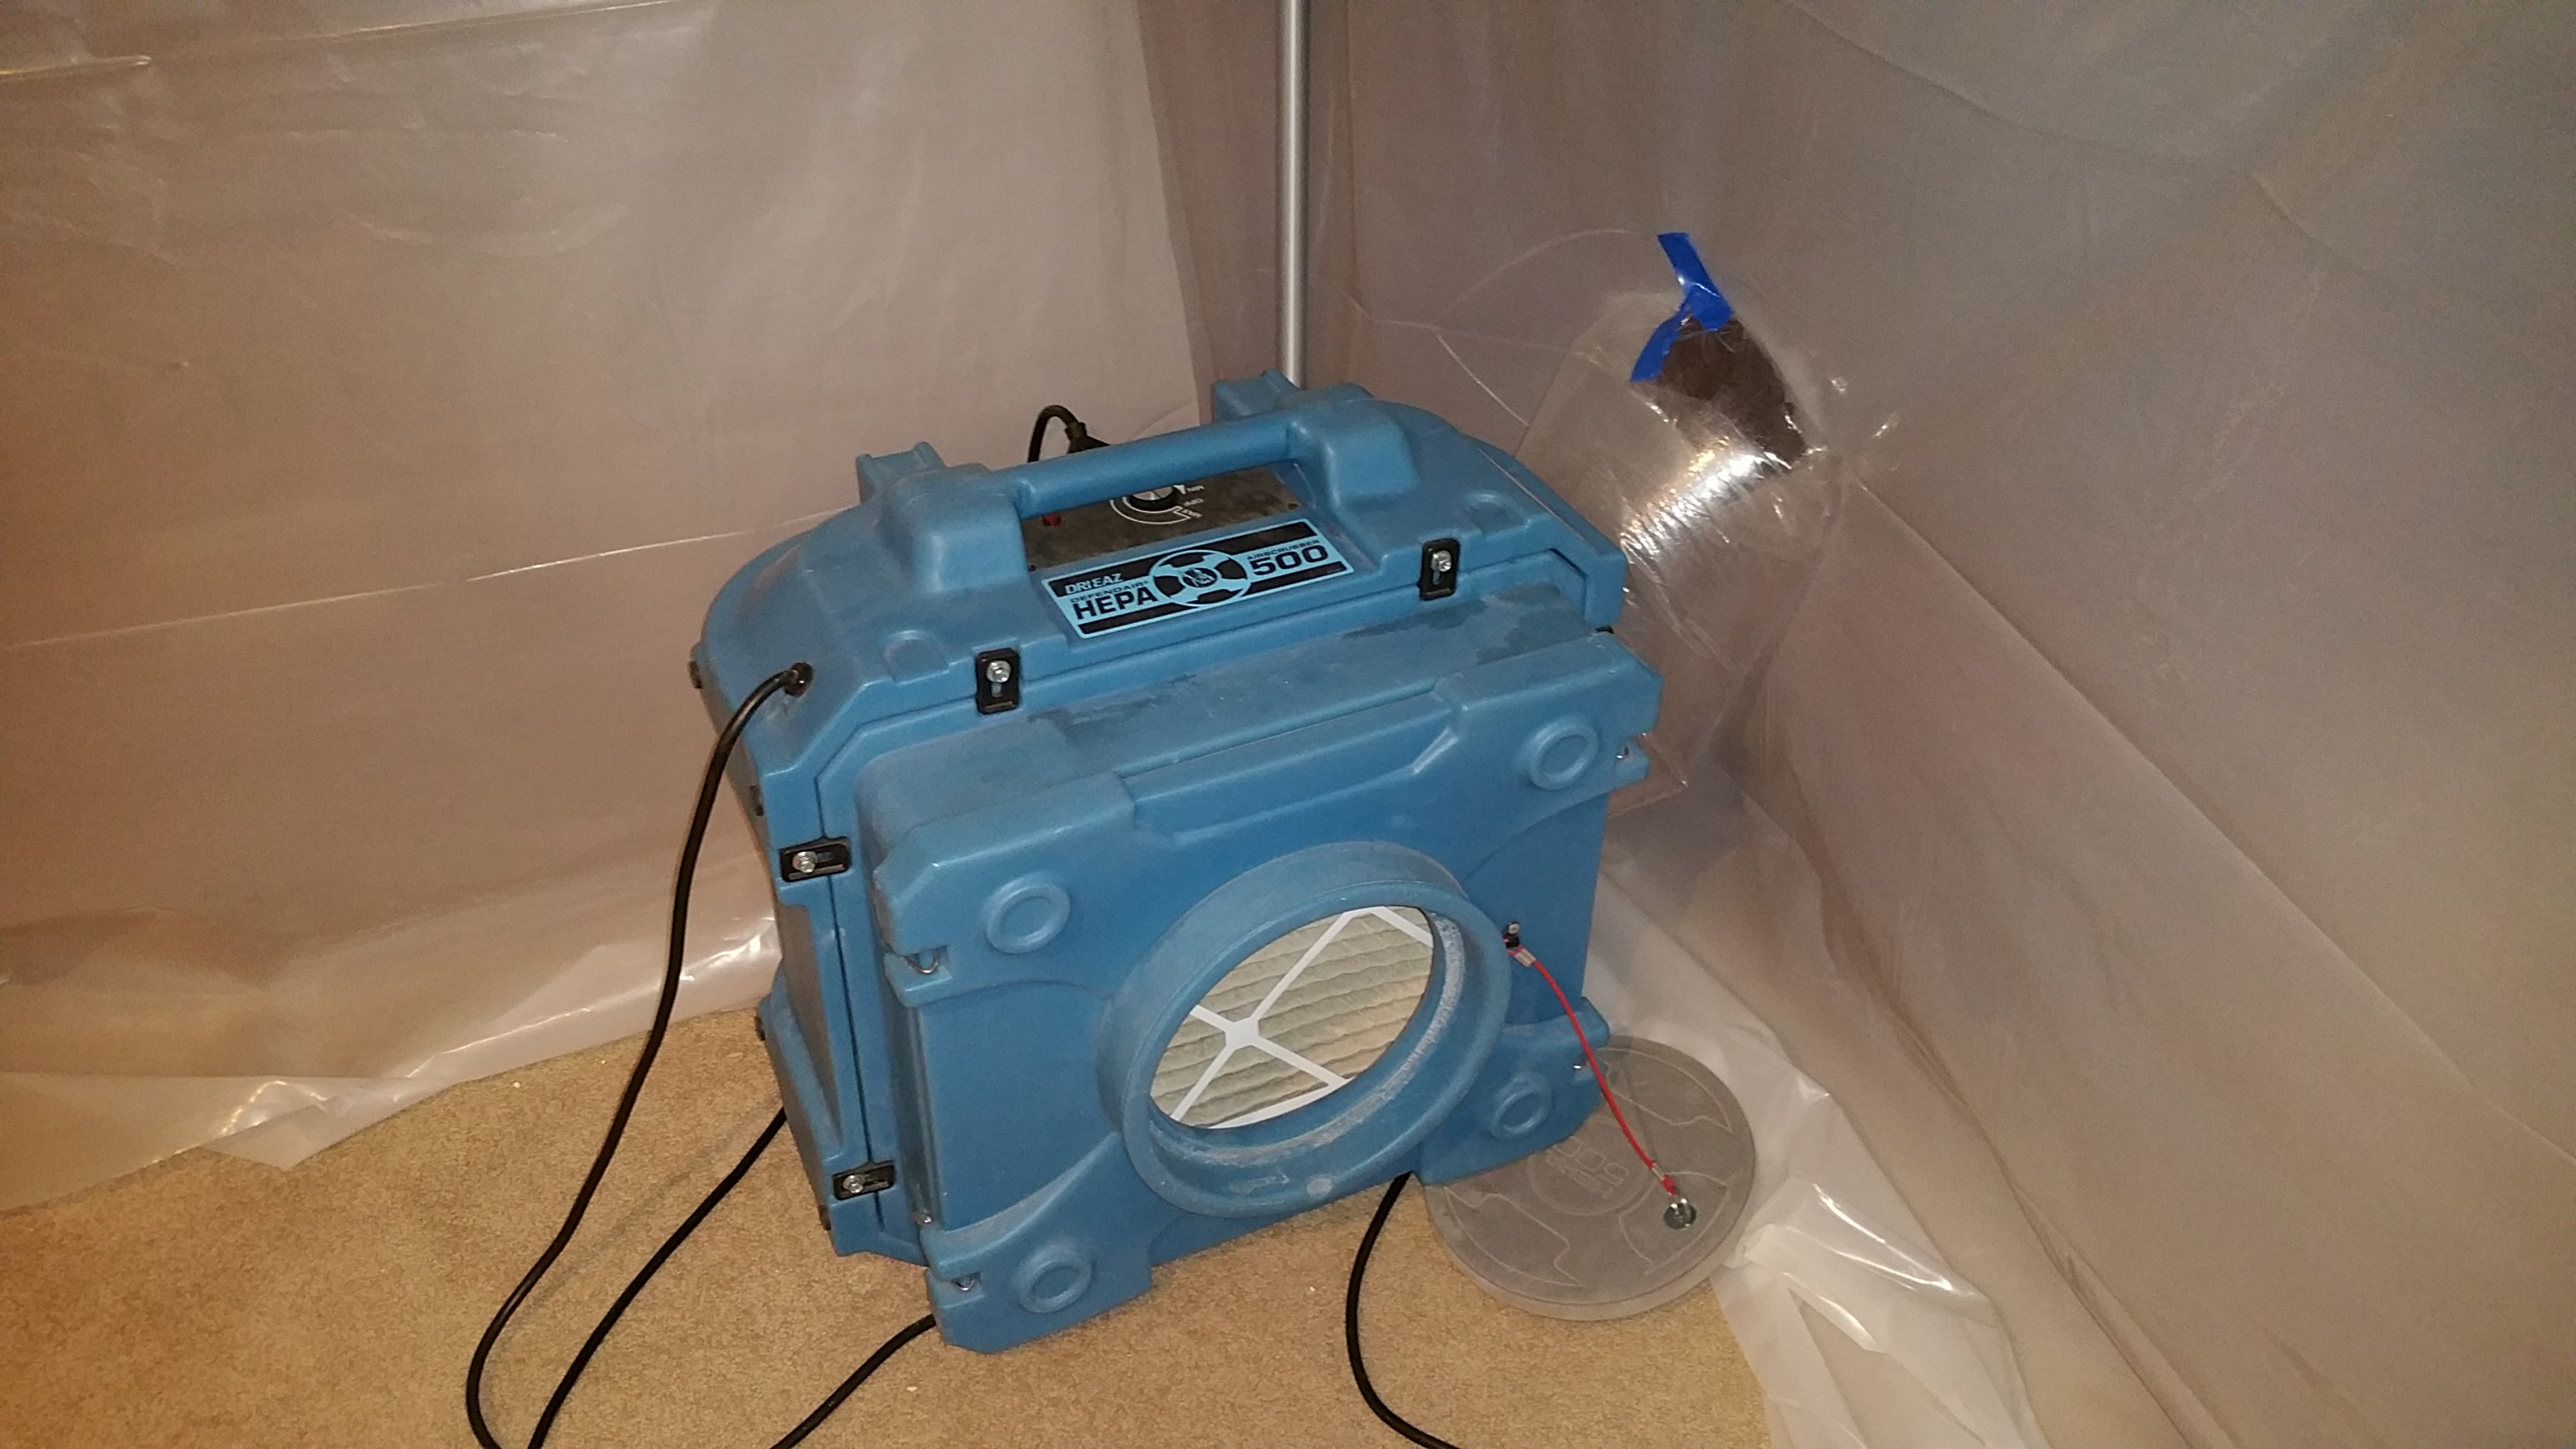 Negative air required to contain mold contamination